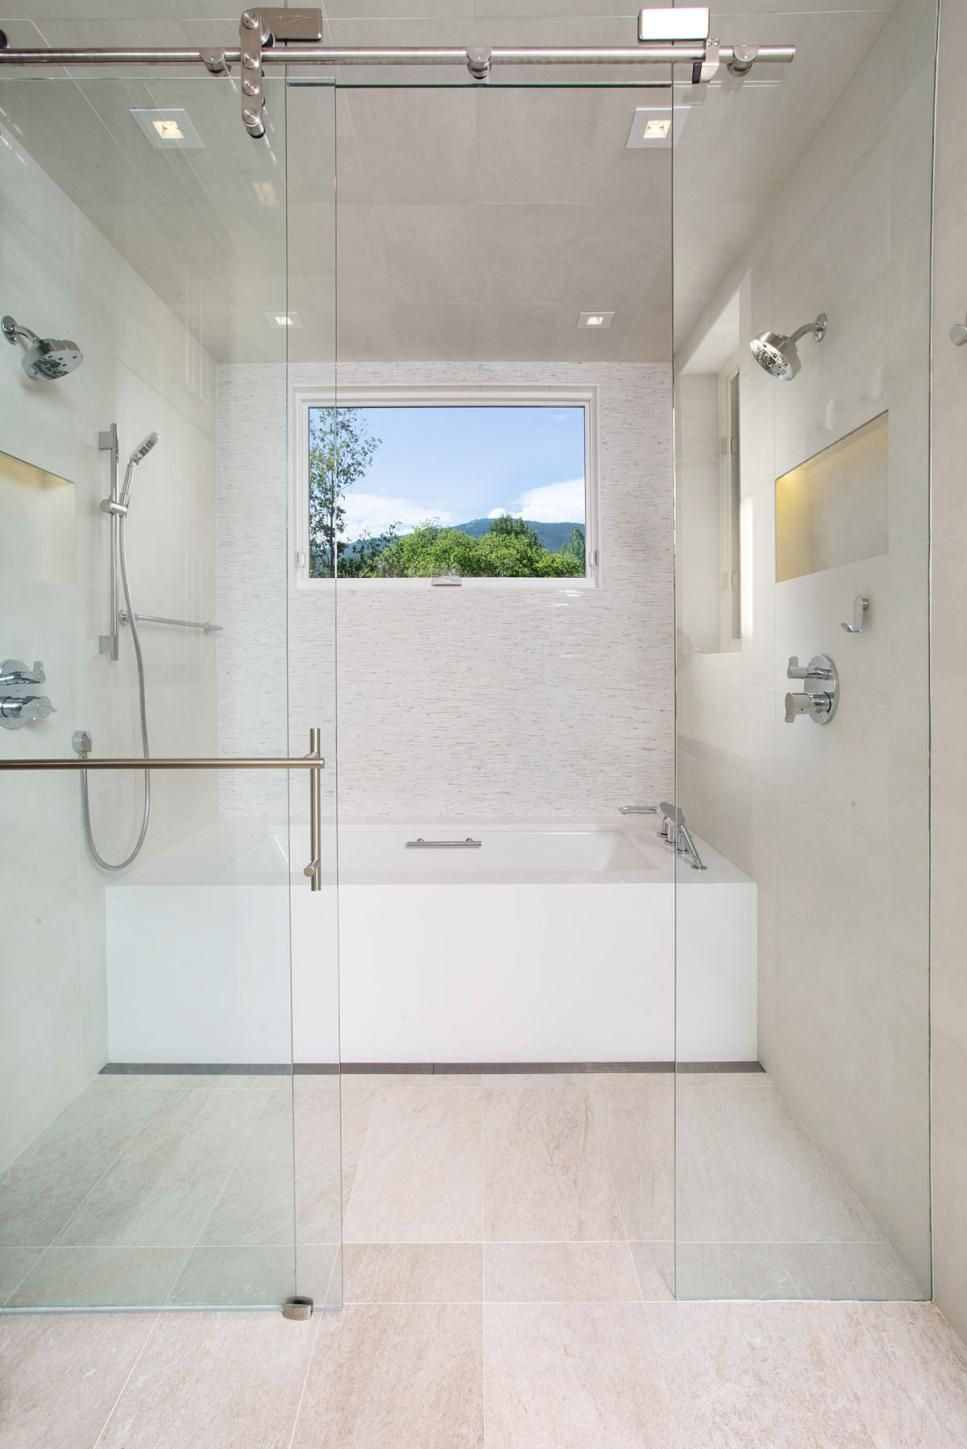 Bathroom Design Trend: No-Threshold Showers in 2018 | Home Design ...